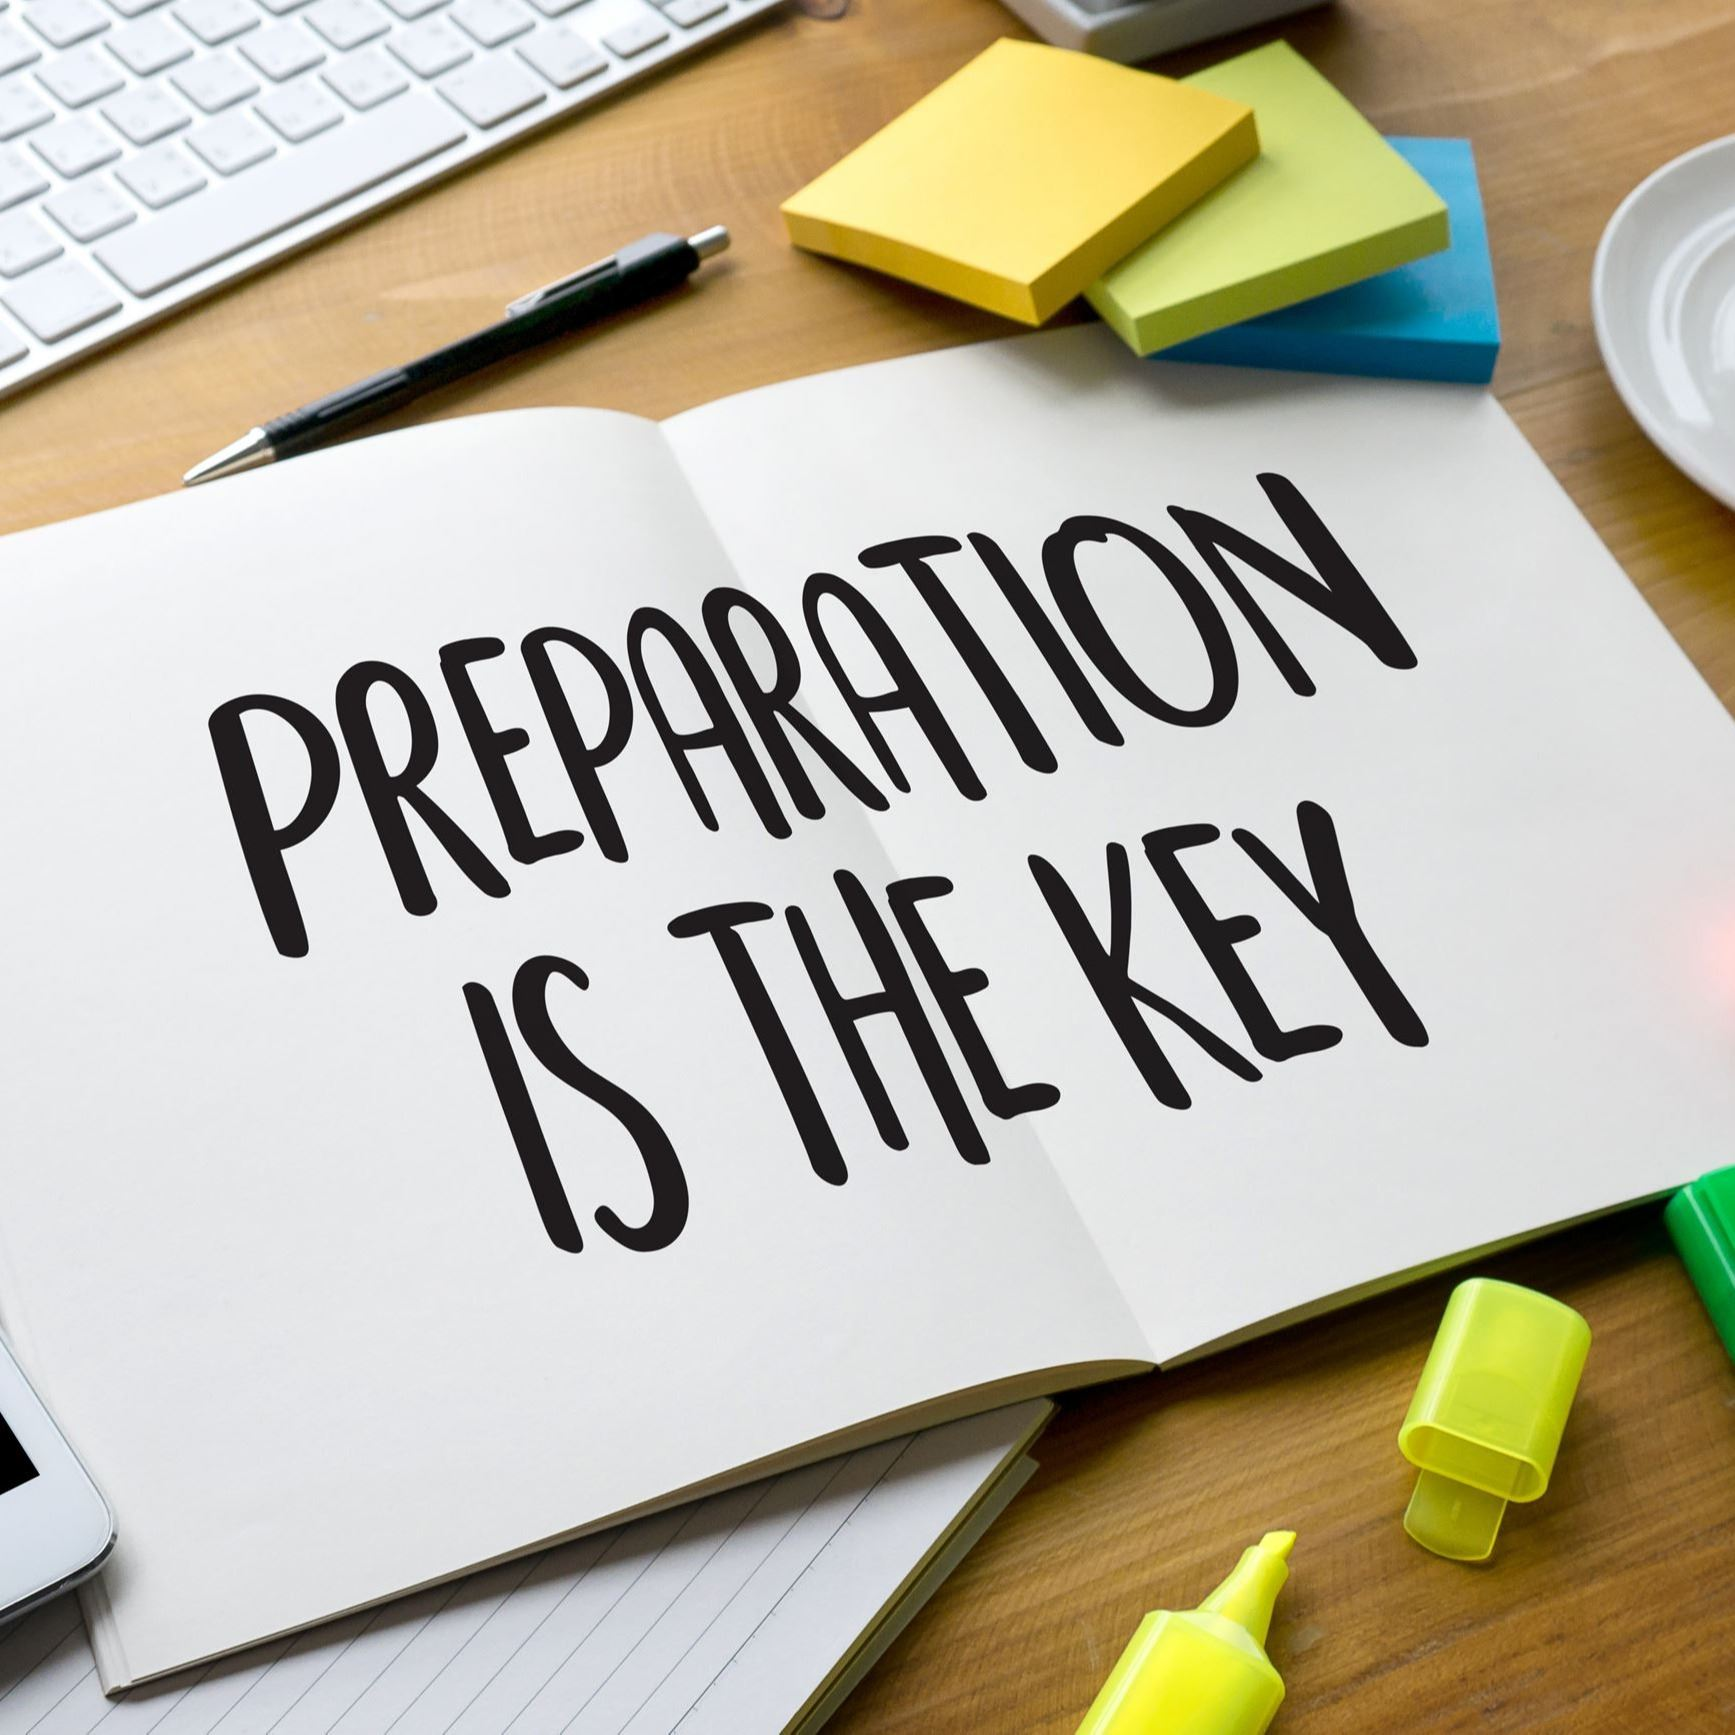 &#34Preparedness is Key&#34 written on paper